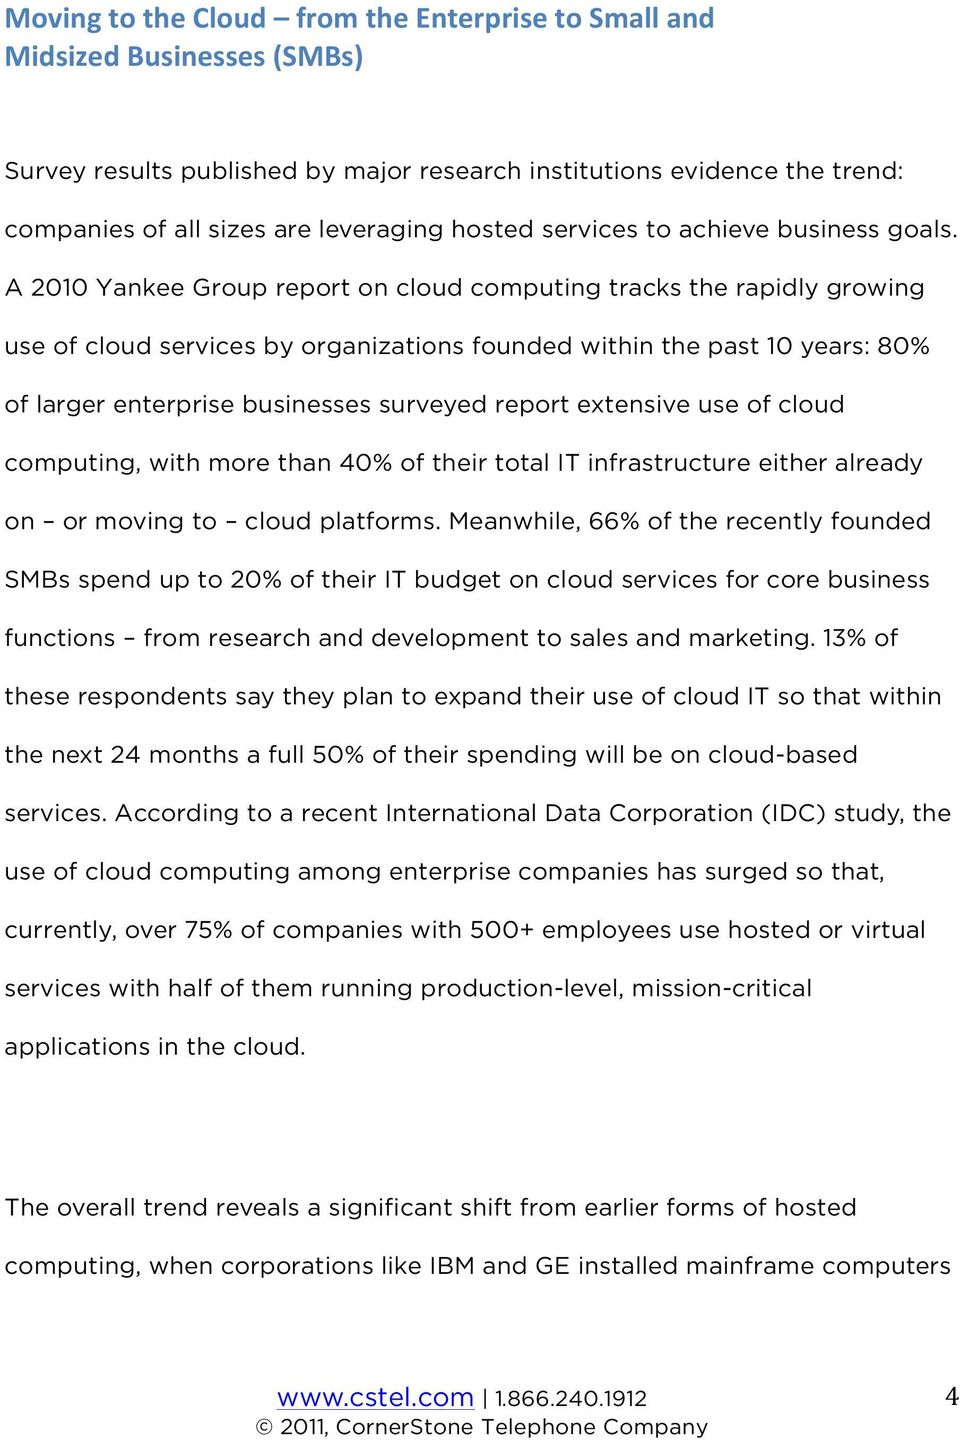 A 2010 Yankee Group report on cloud computing tracks the rapidly growing use of cloud services by organizations founded within the past 10 years: 80% of larger enterprise businesses surveyed report